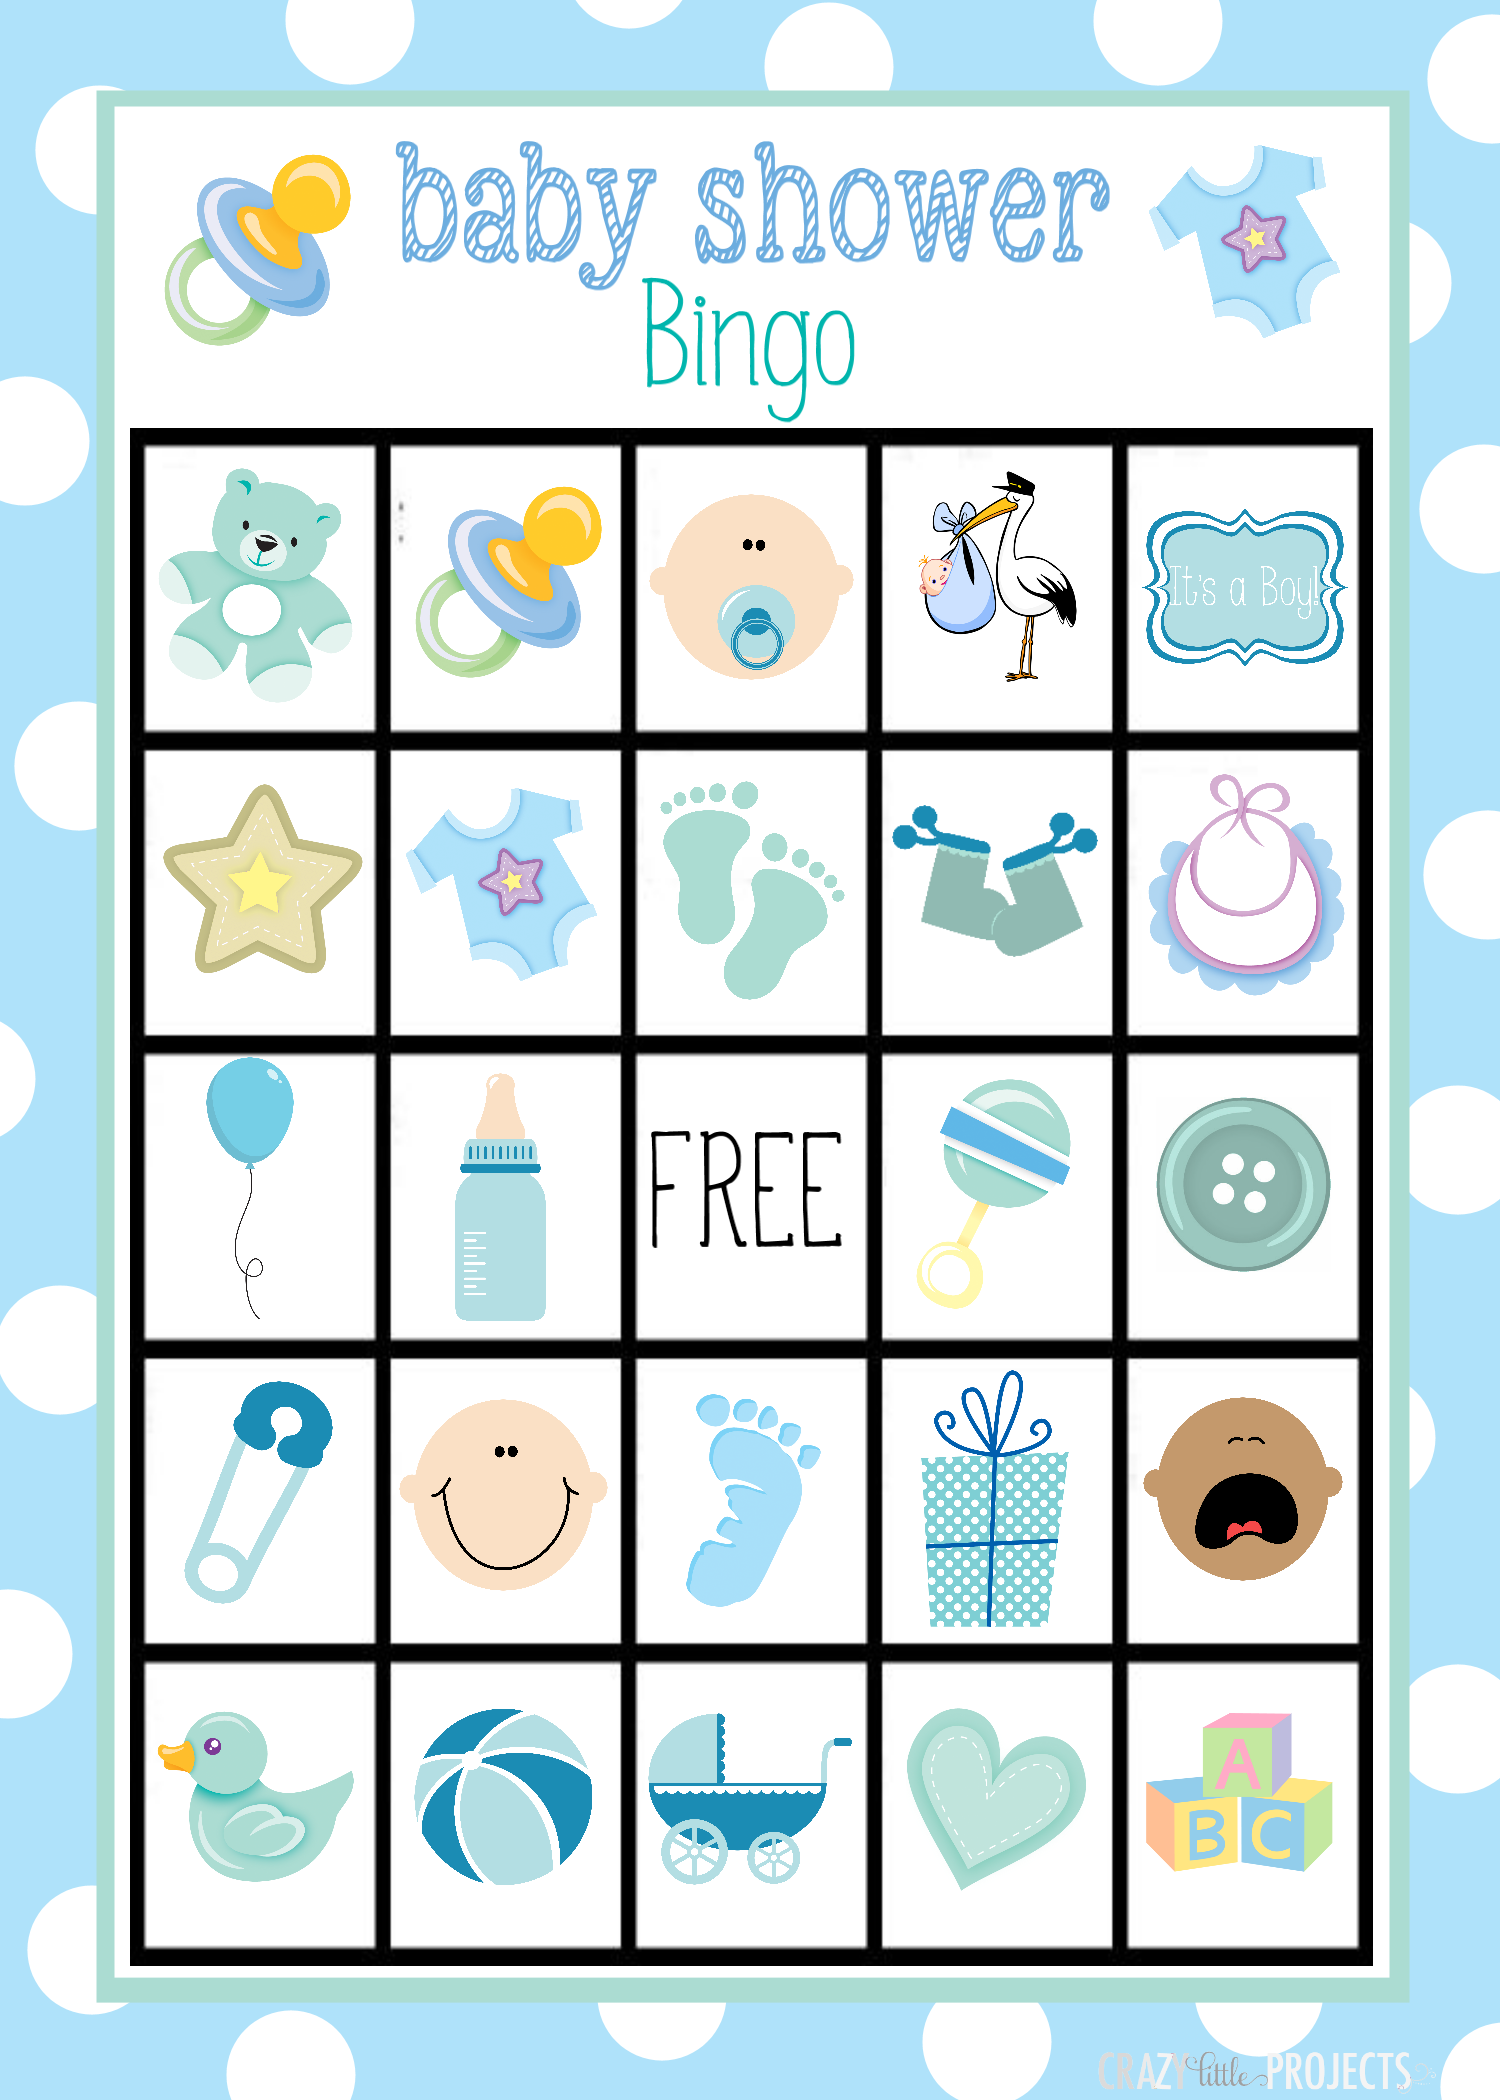 Baby shower bingo cards baby shower bingo bingo games and babies baby shower bingo game solutioingenieria Gallery